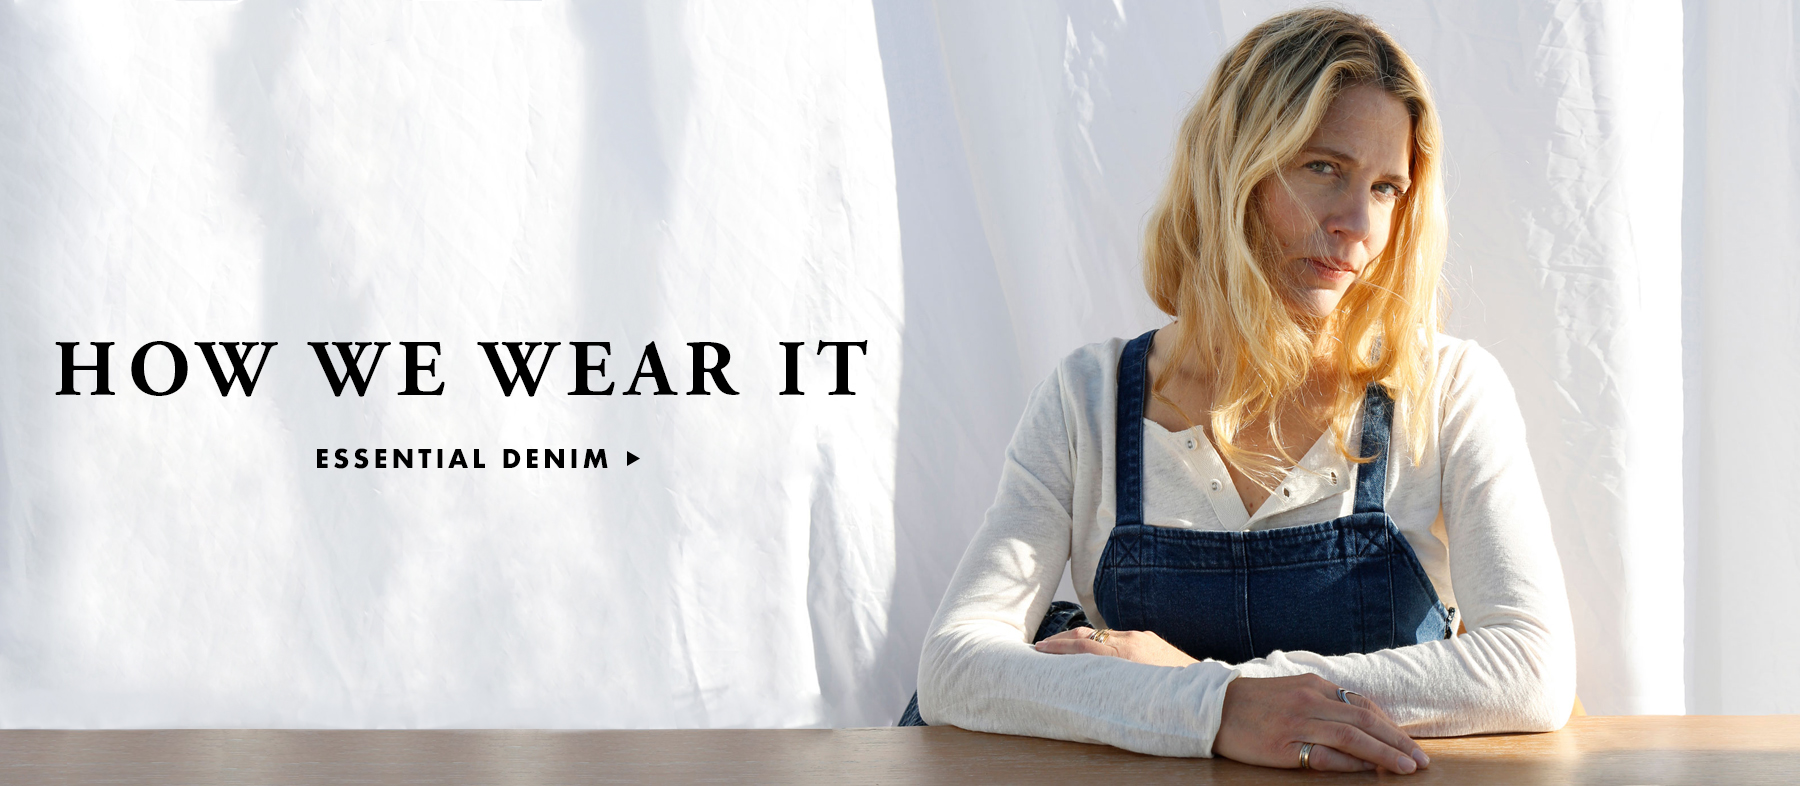 How We Wear it: Denim